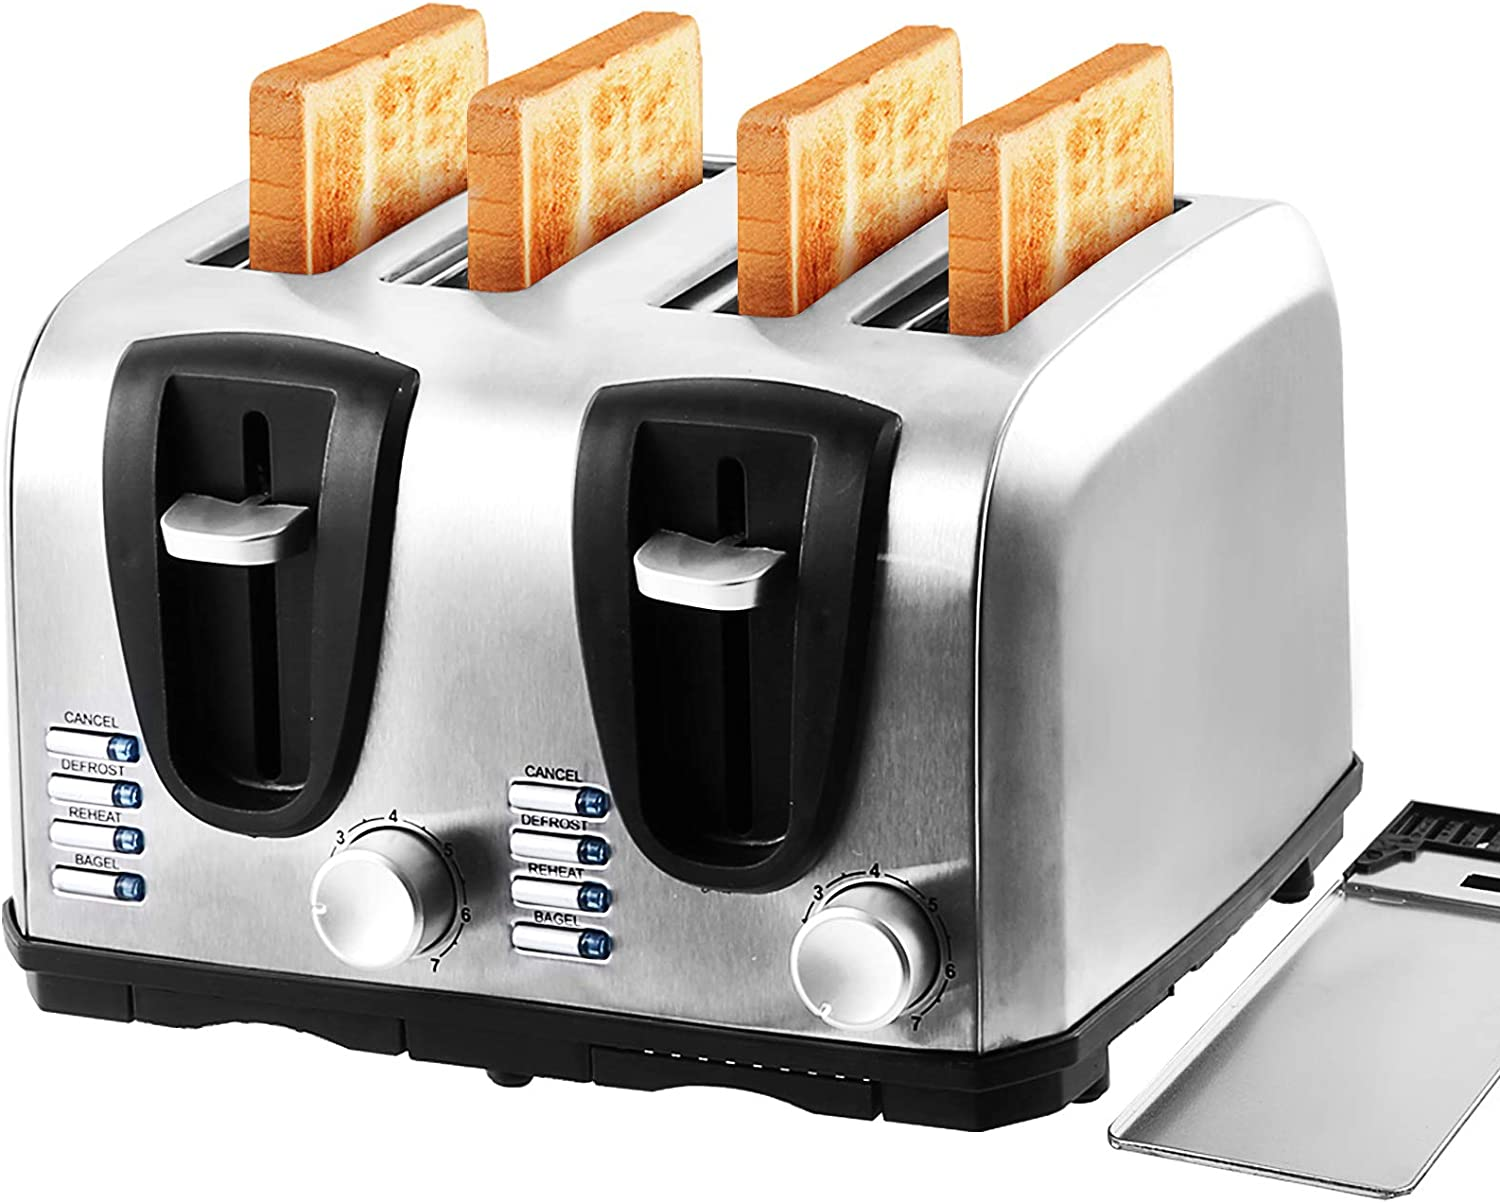 2/4-Slice Extre Wide Slot Toaster,Stainless Steel with Bagel,Cancel,Reheat,Defrost Function,7 Bread Shade Settings and Removable Crumb Tray 1200-1400W Silver.